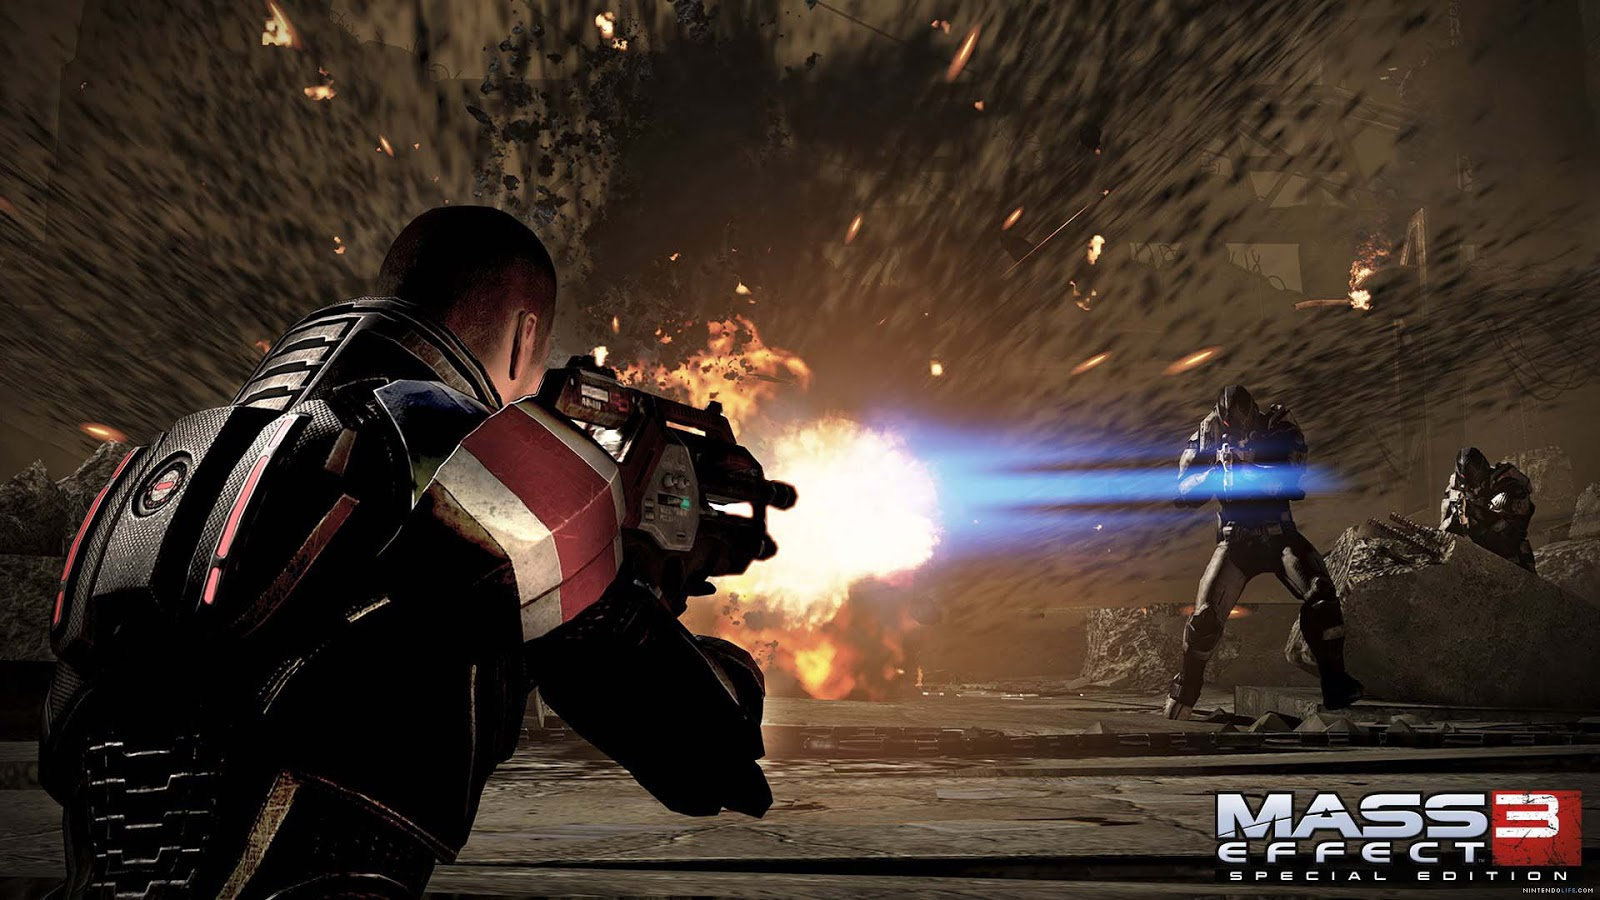 Mass-Effect-3-Gameplay=Screenshot-6